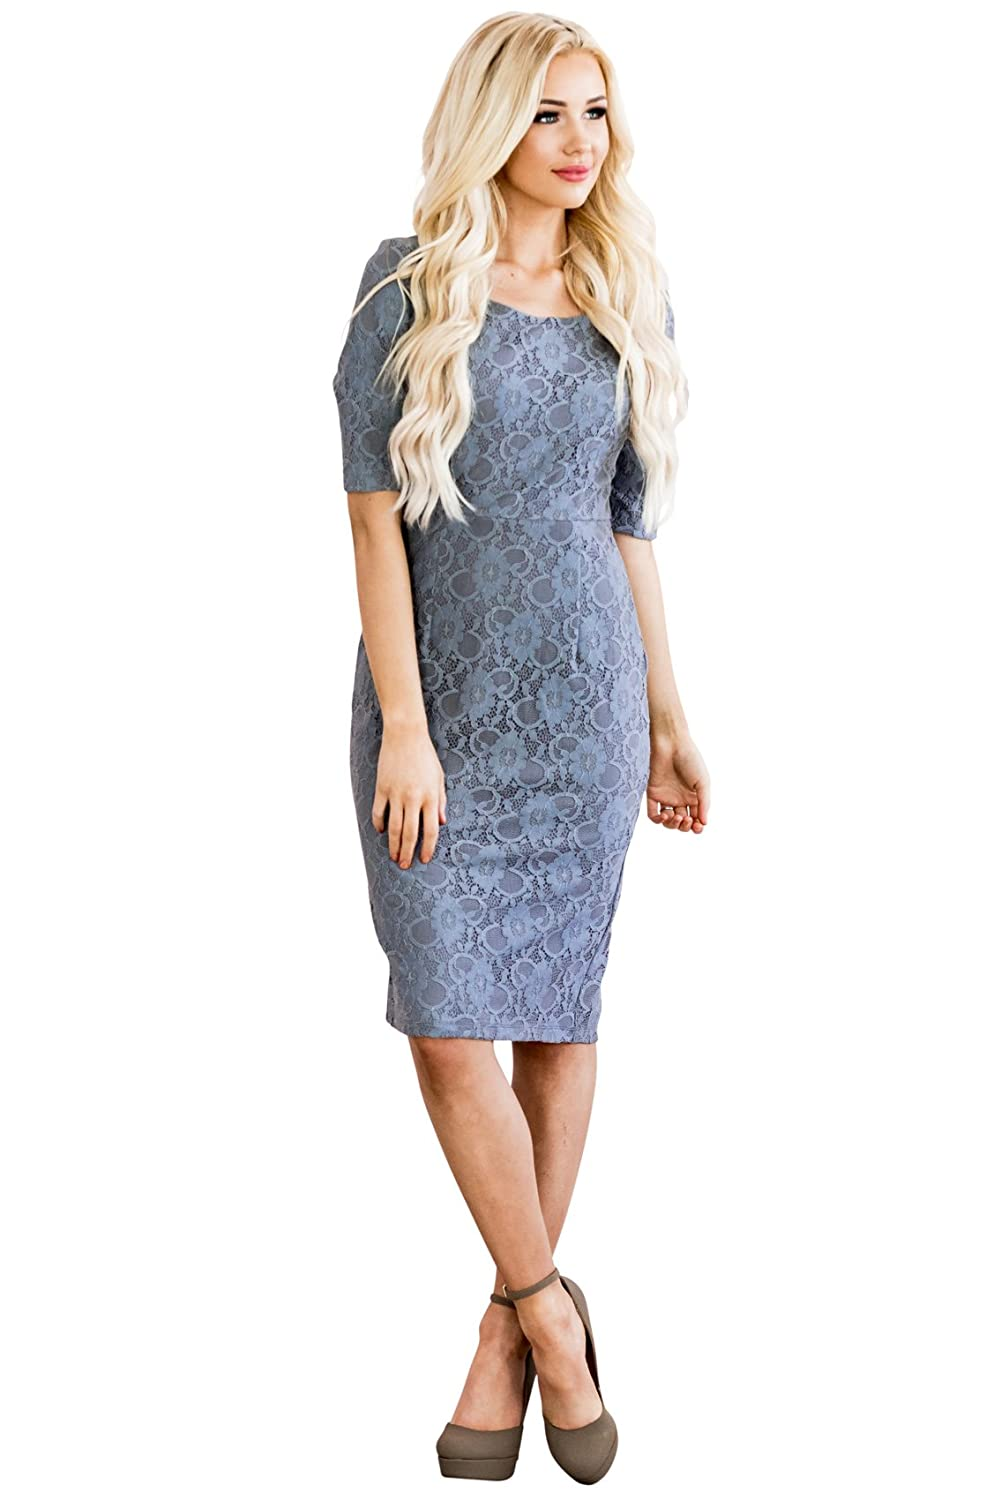 Modest knee-length full lace dress with pencil skirt   half-sleeves. Lace  overlay is a perfect match to the lining. Perfect for wearing to church 3c62f8d5f